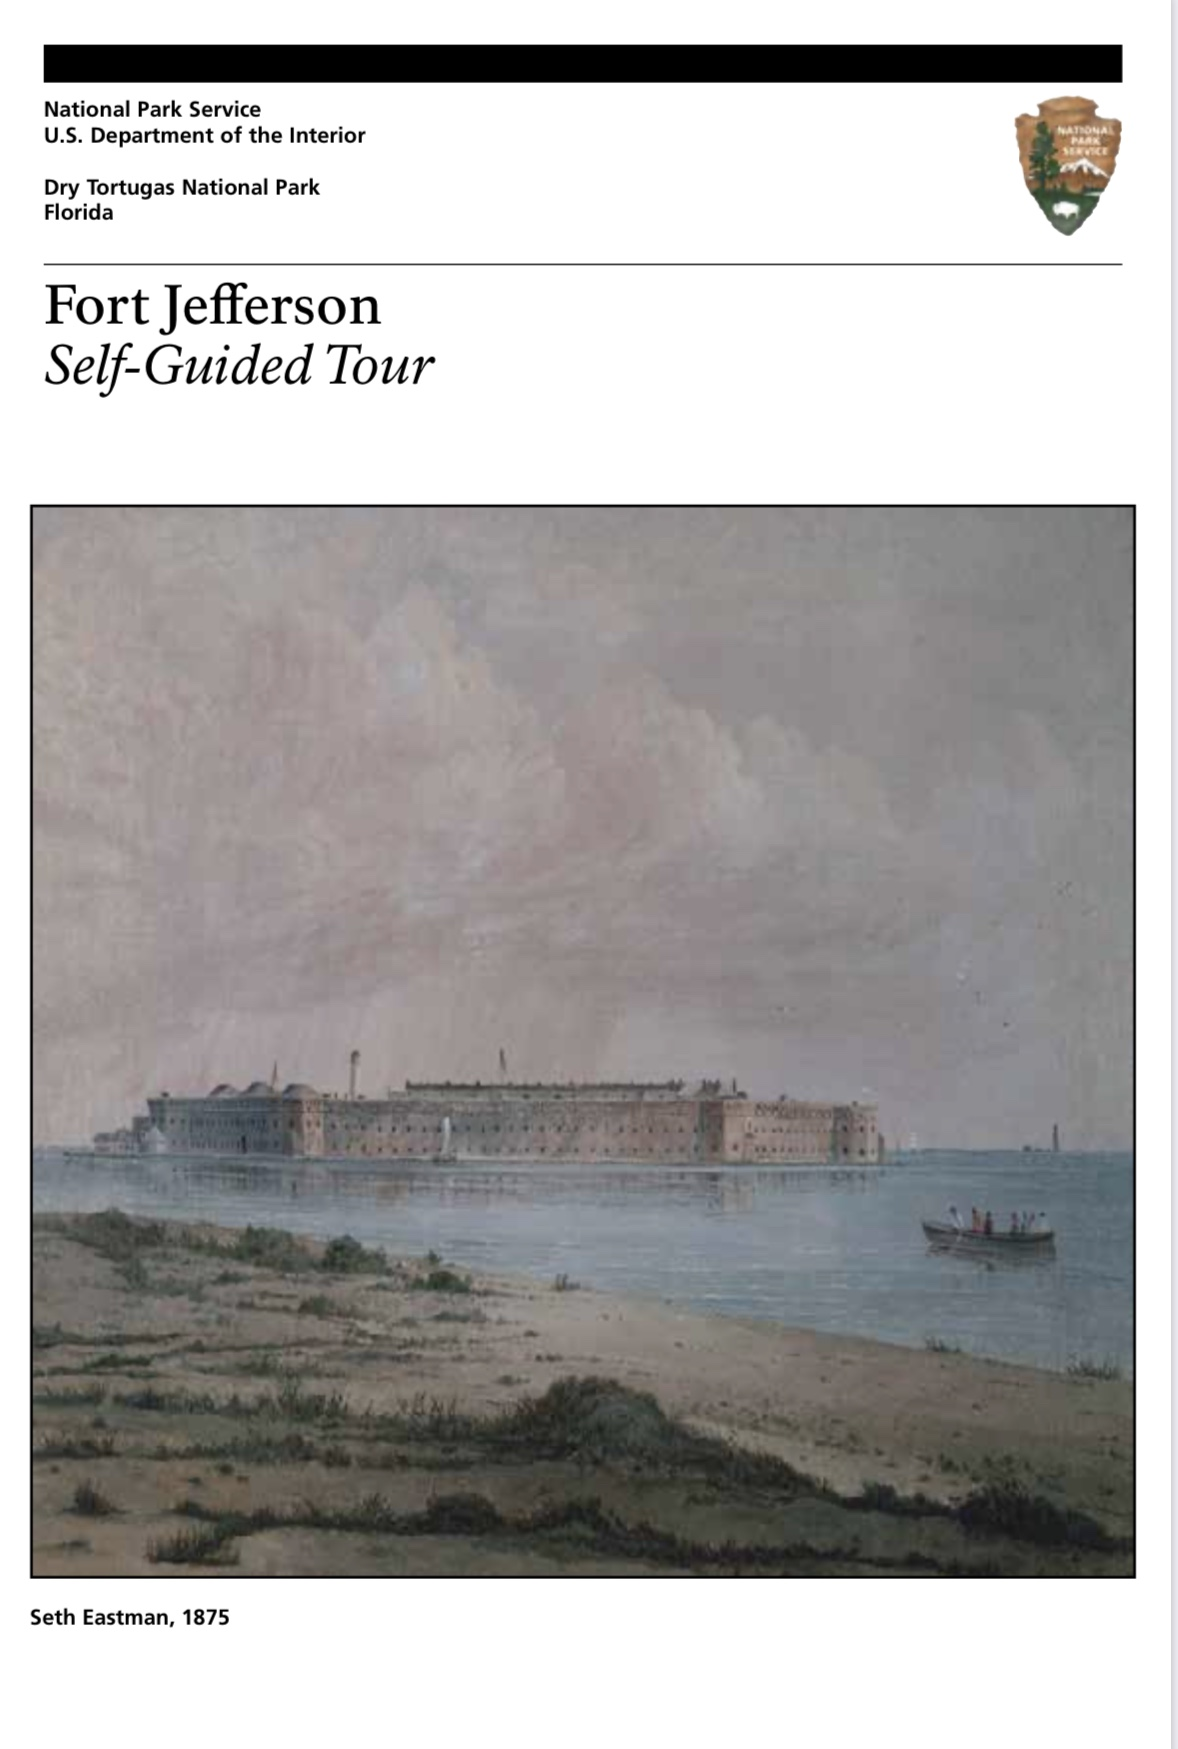 Fort Jefferson Tour-National Park Service